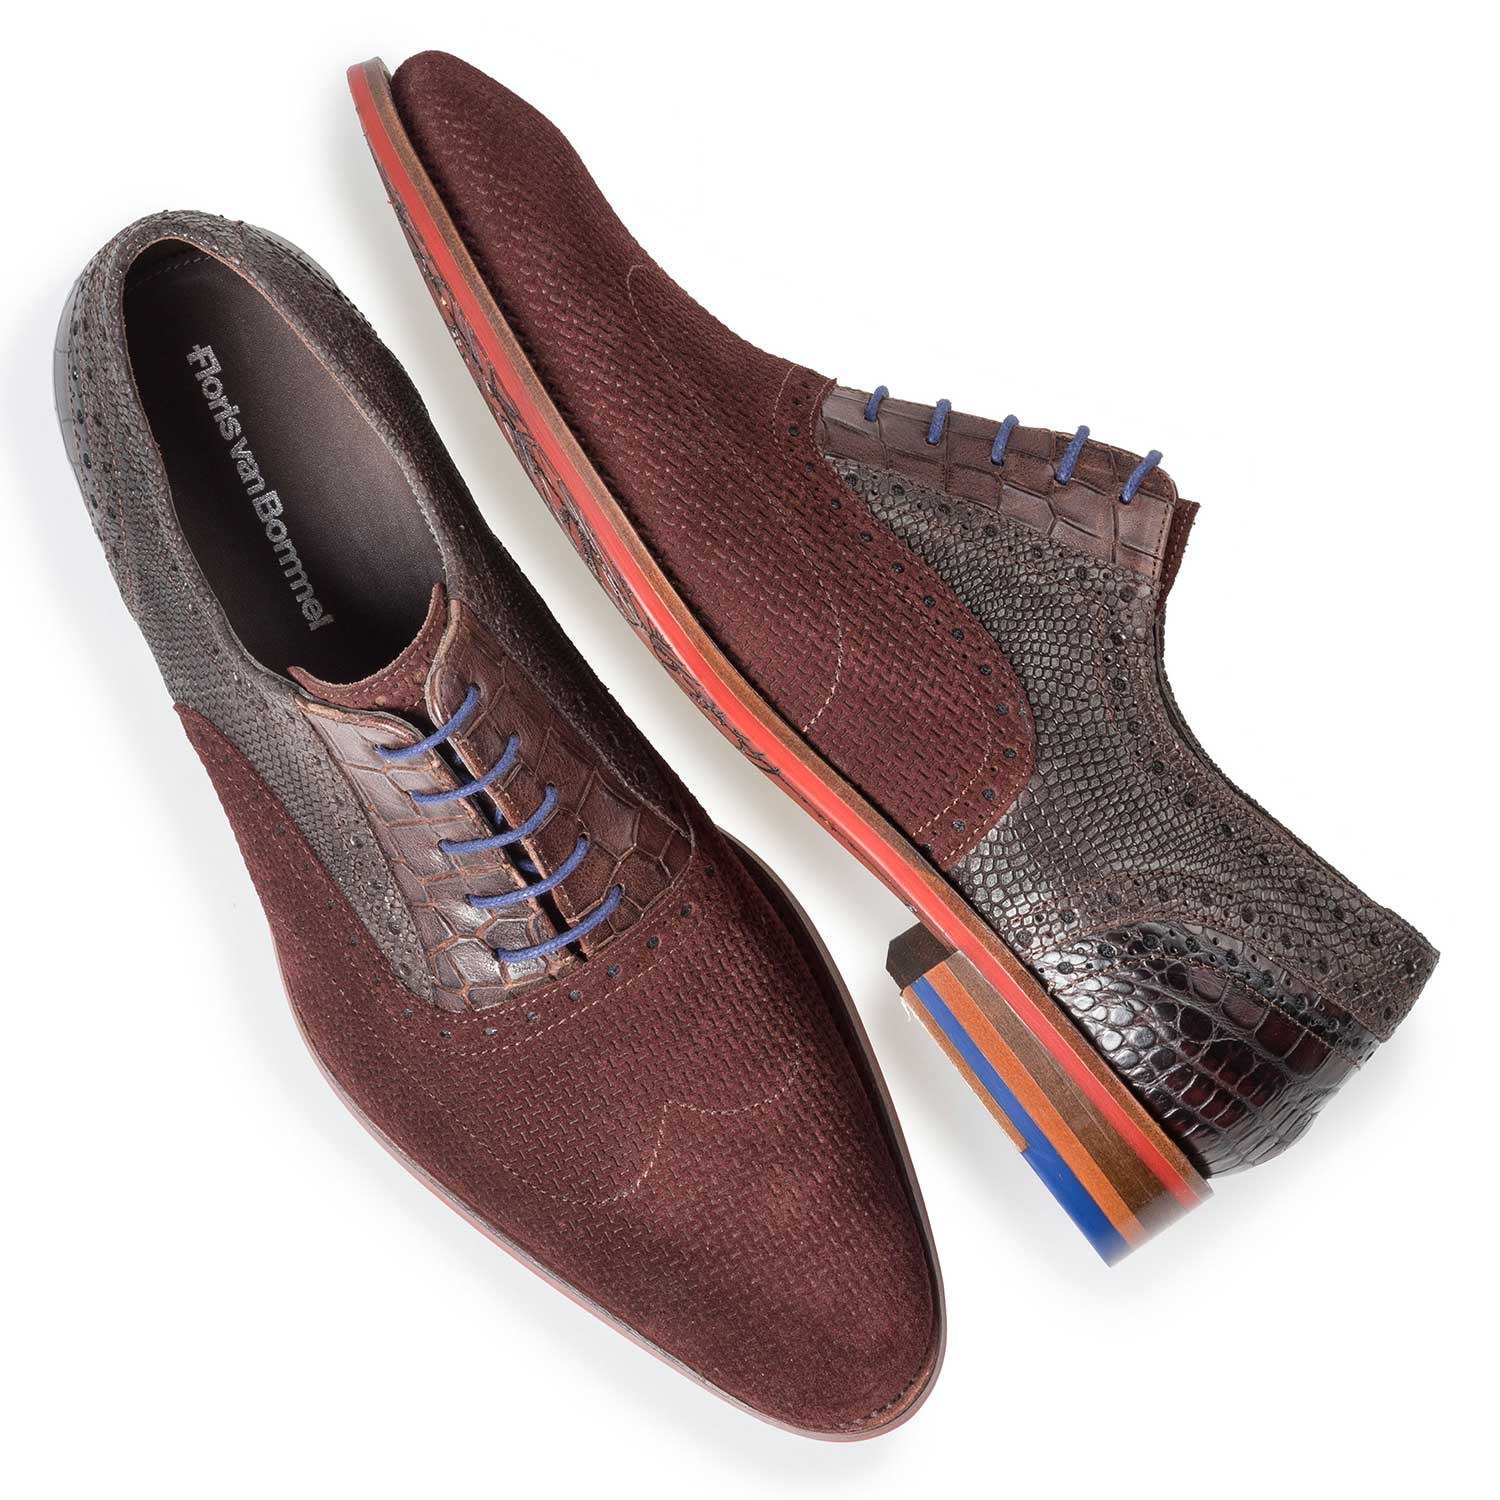 19114/26 - Burgundy red brogue lace shoe